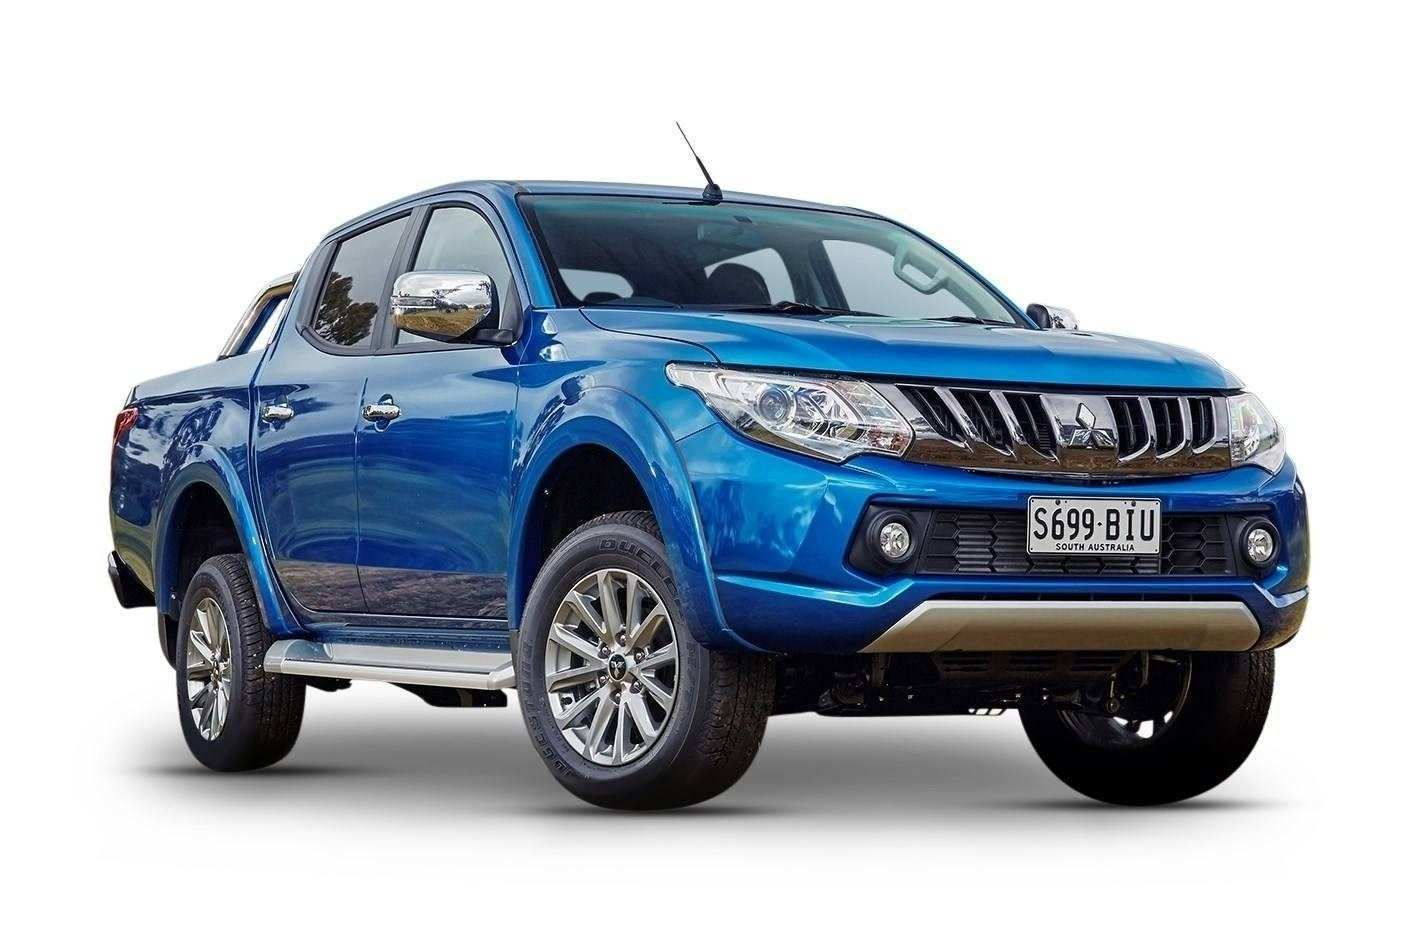 79 Concept of 2020 Mitsubishi Triton Perfect Outdoor First Drive with 2020 Mitsubishi Triton Perfect Outdoor